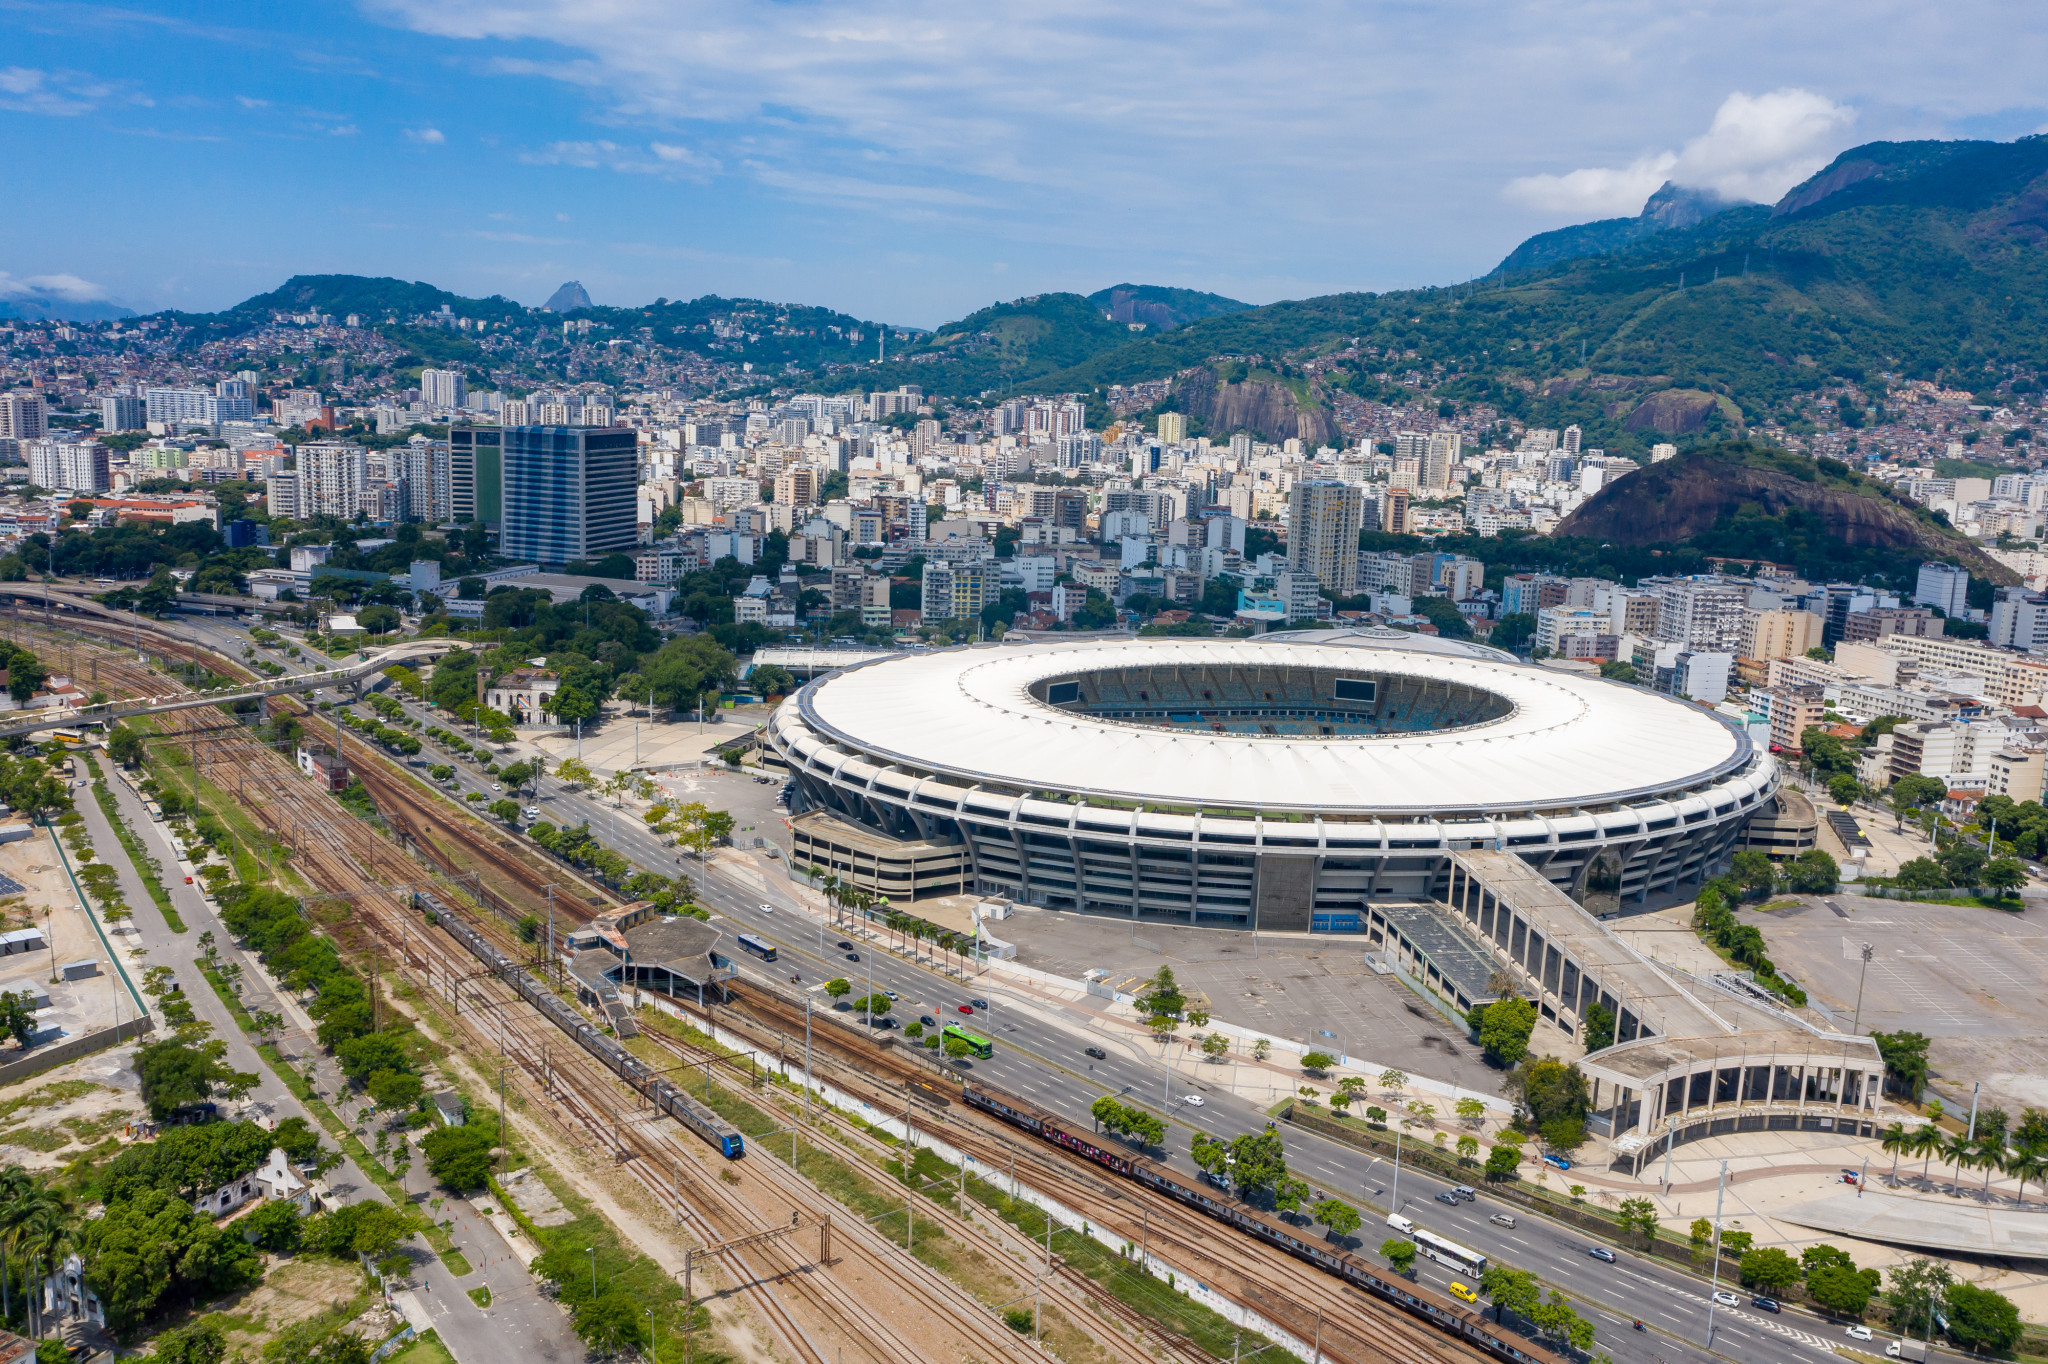 Mixed reaction to plans to rename Maracana Stadium in honour of Pelé